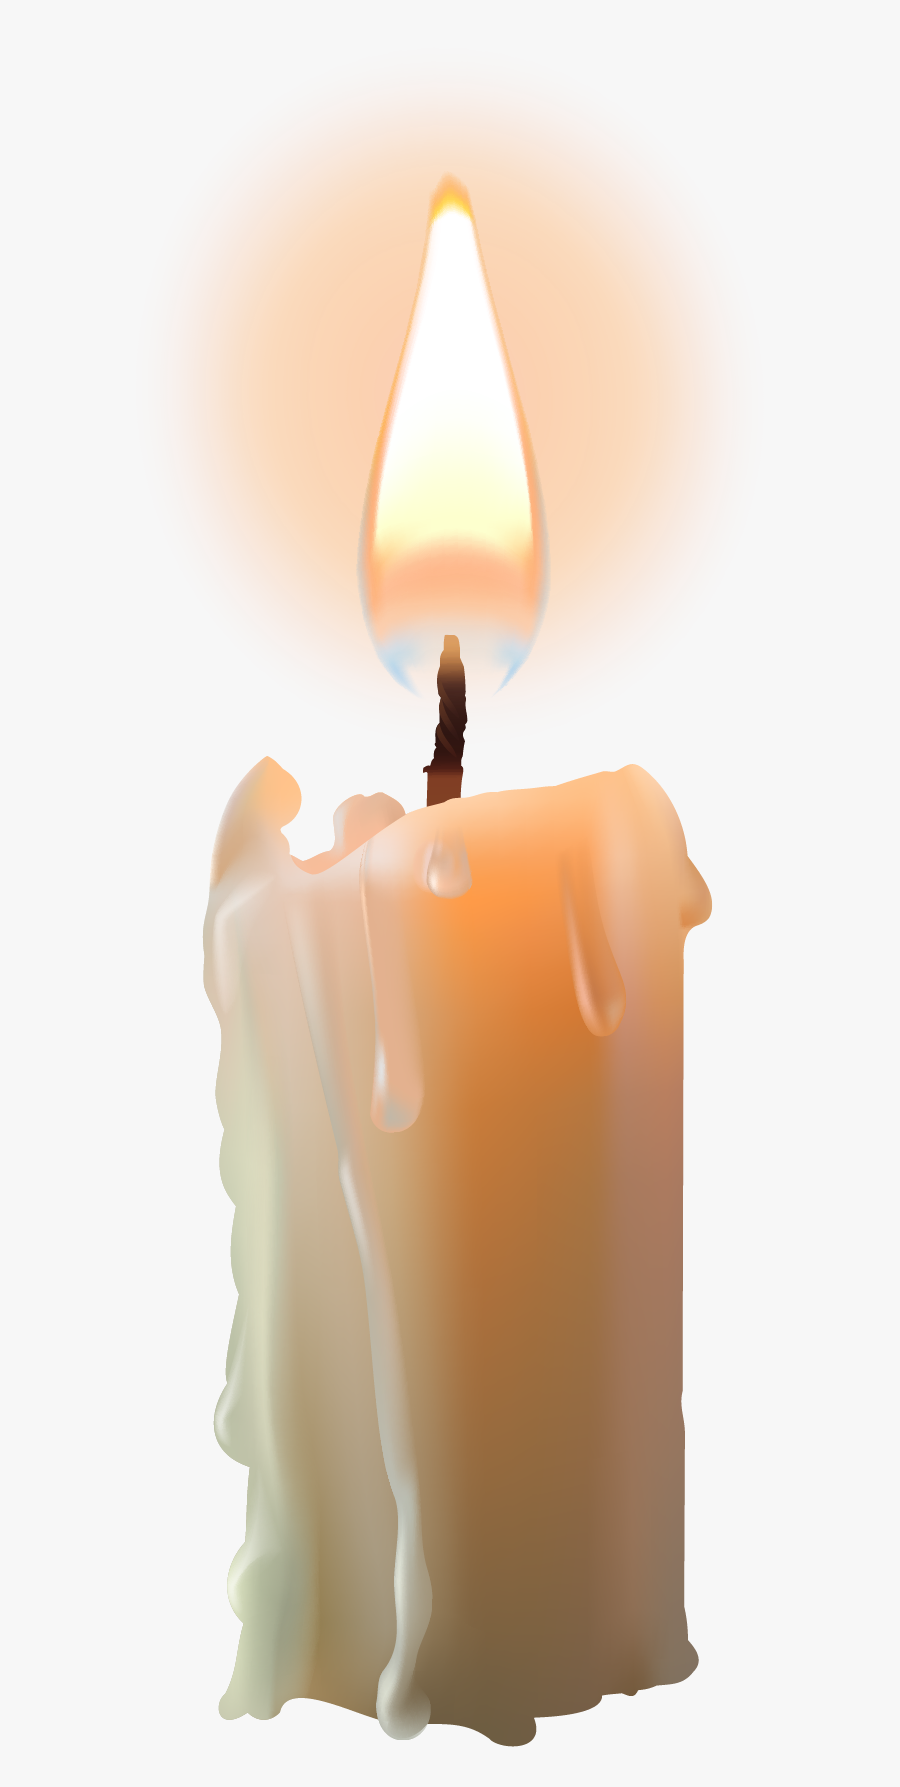 Bright Candle With Flame Png Image - Advent Candle, Transparent Clipart